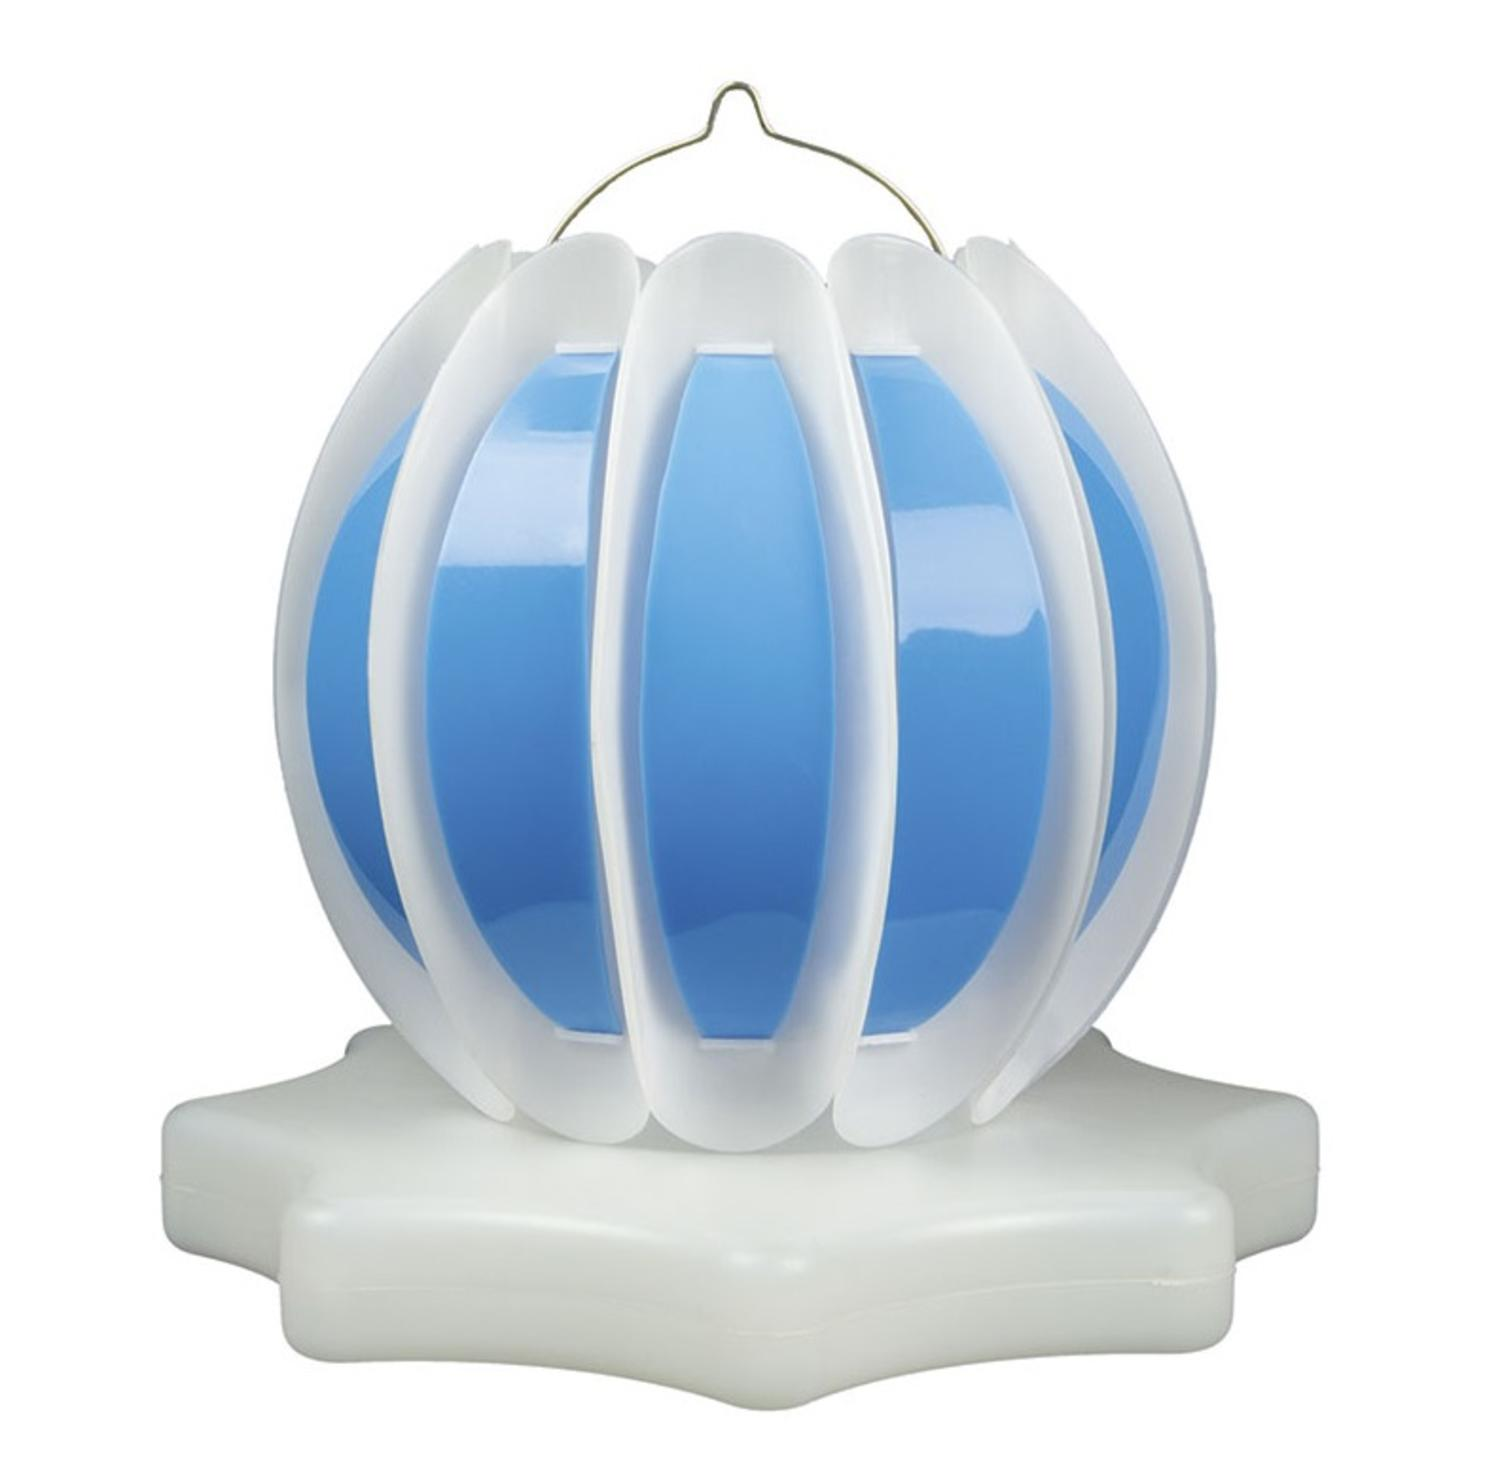 Set of 2 Blue and White Solar Powered Swimming Pool or Spa Floating or Hanging Lanterns 9.25